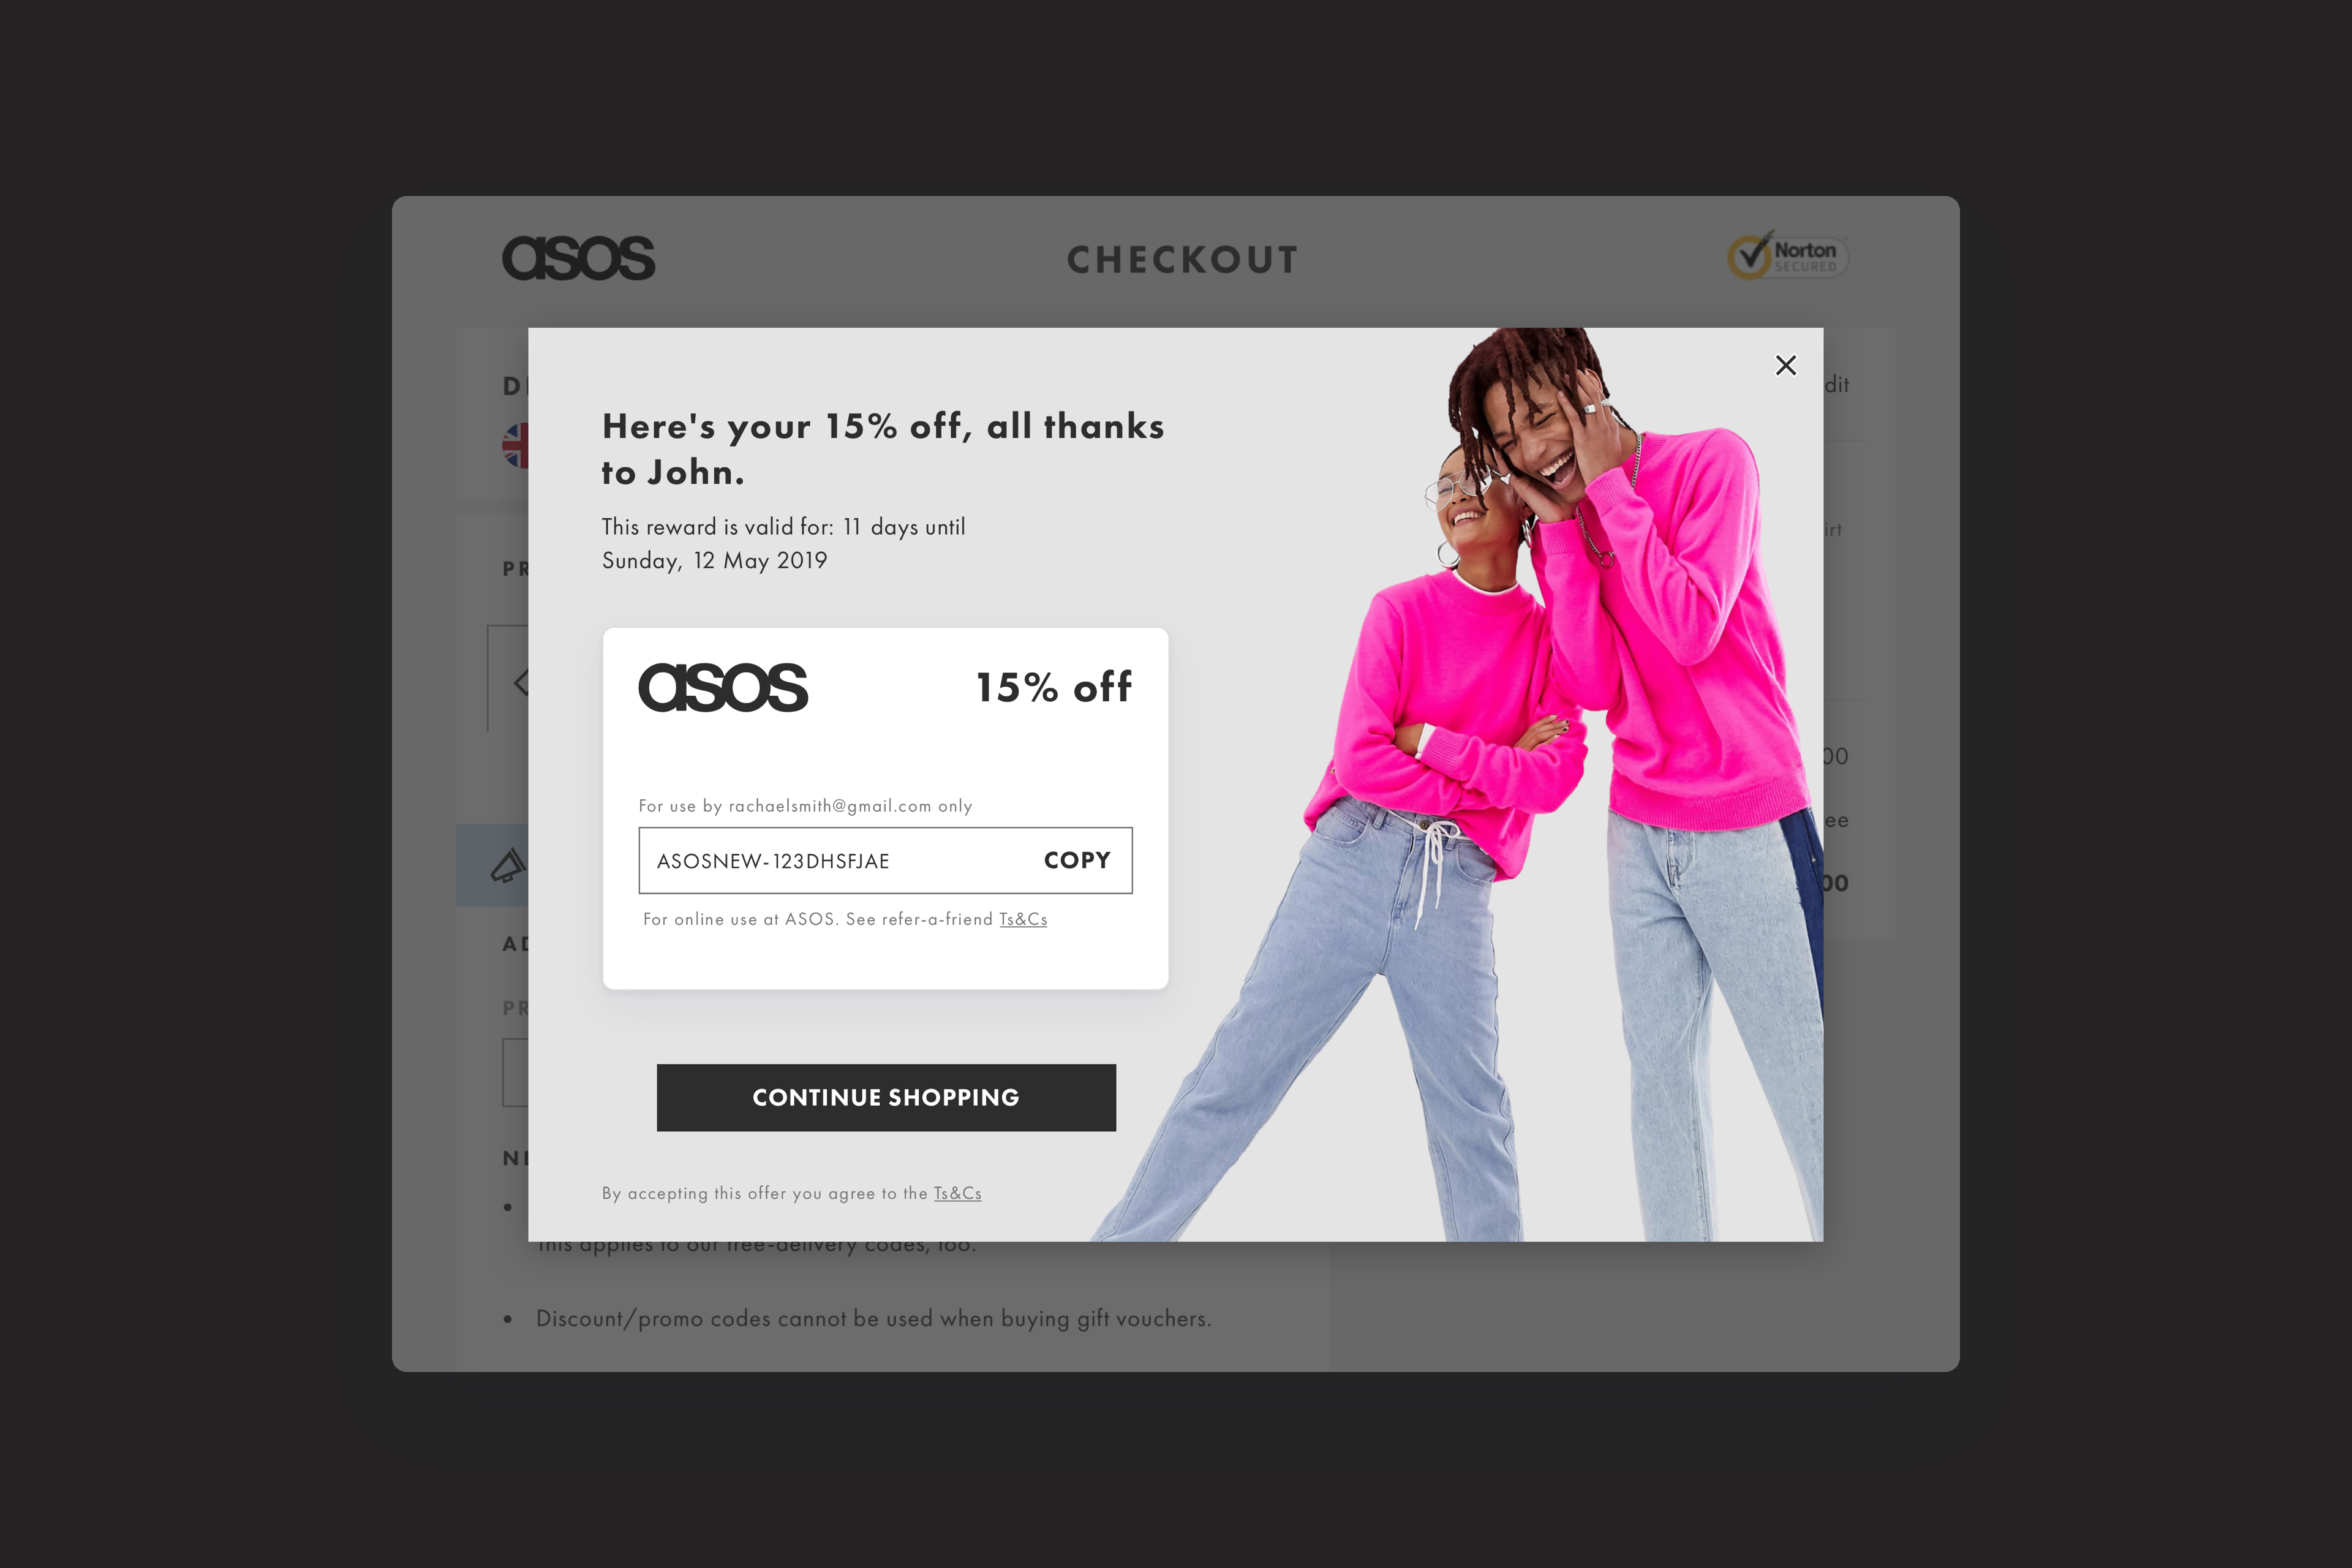 Referral code pop-up within checkout